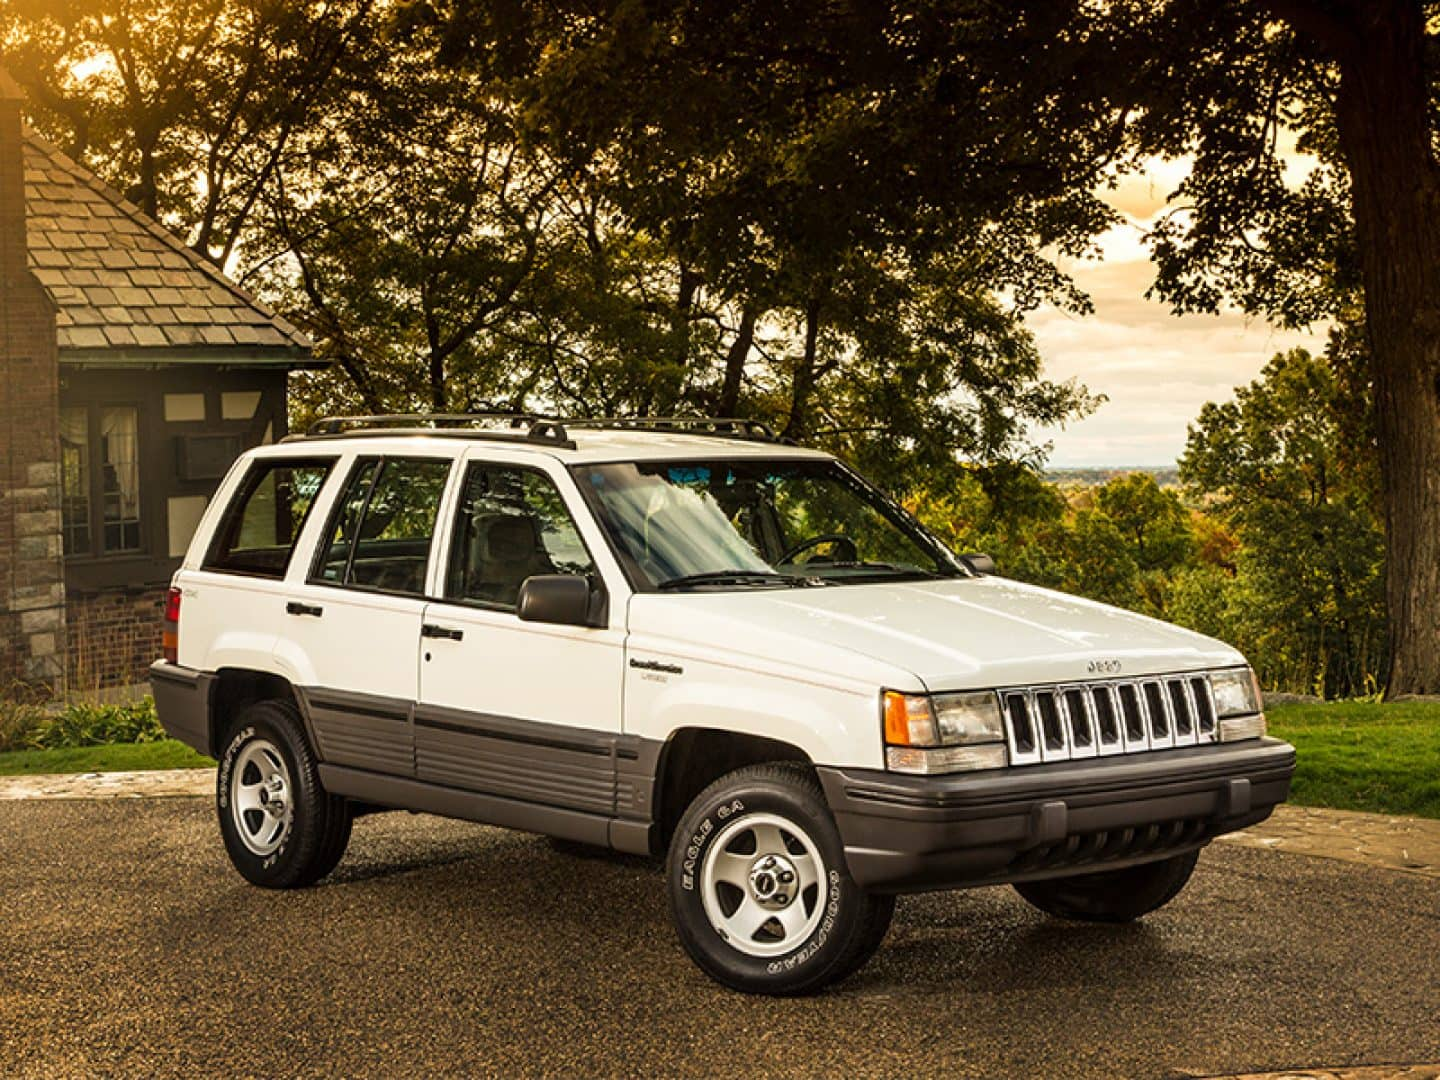 Jeep History In The 1990s Aftermarket 4 0 Cylinder Head Grand Cherokee